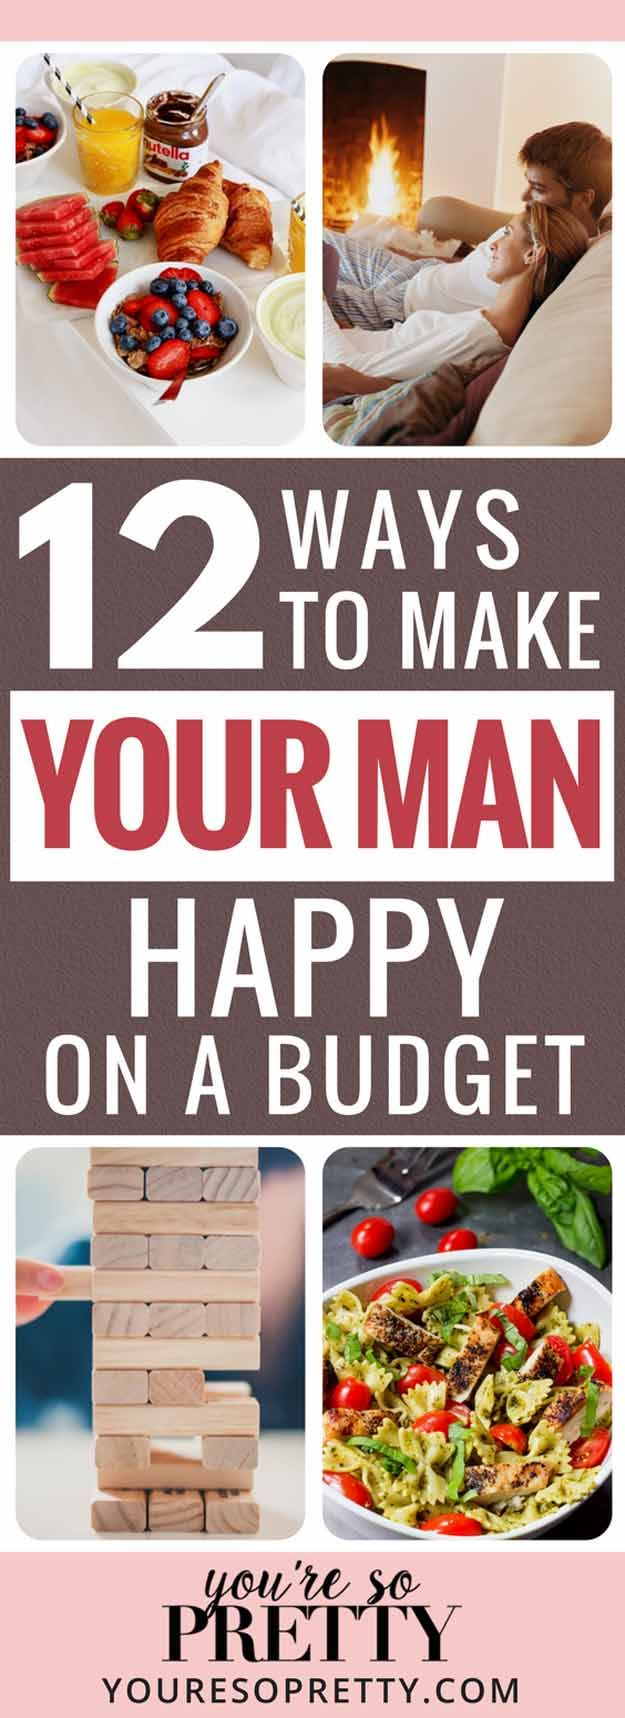 12 Ways to Make Your Man Happy Without Spending This Valentine's Day